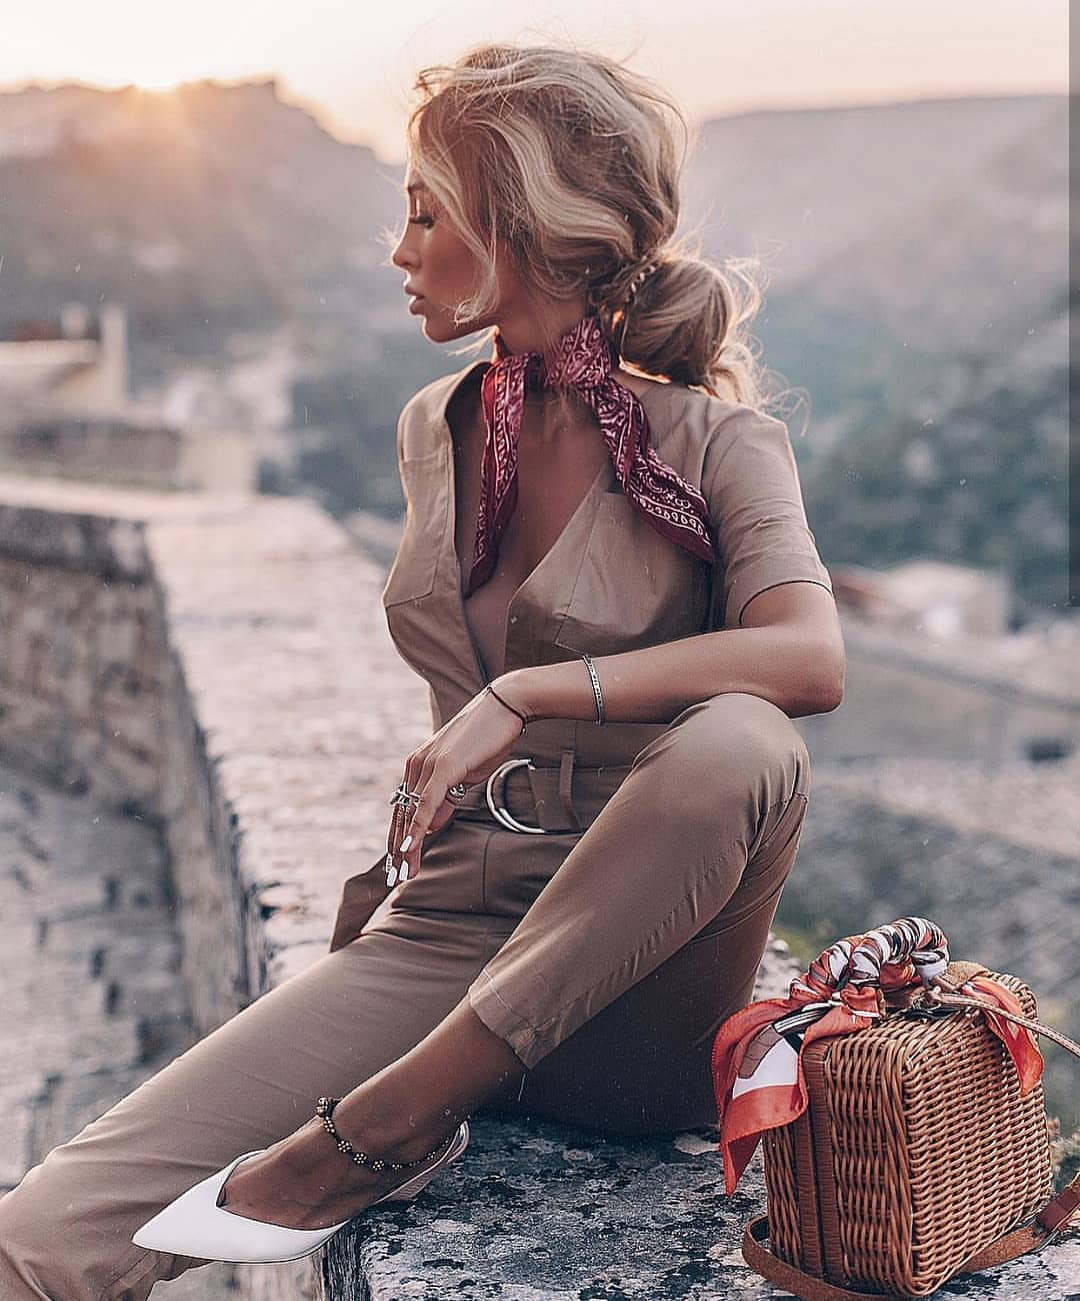 Khaki Beige Slim Jumpsuit In Safari Style For Summer Traveling 2020